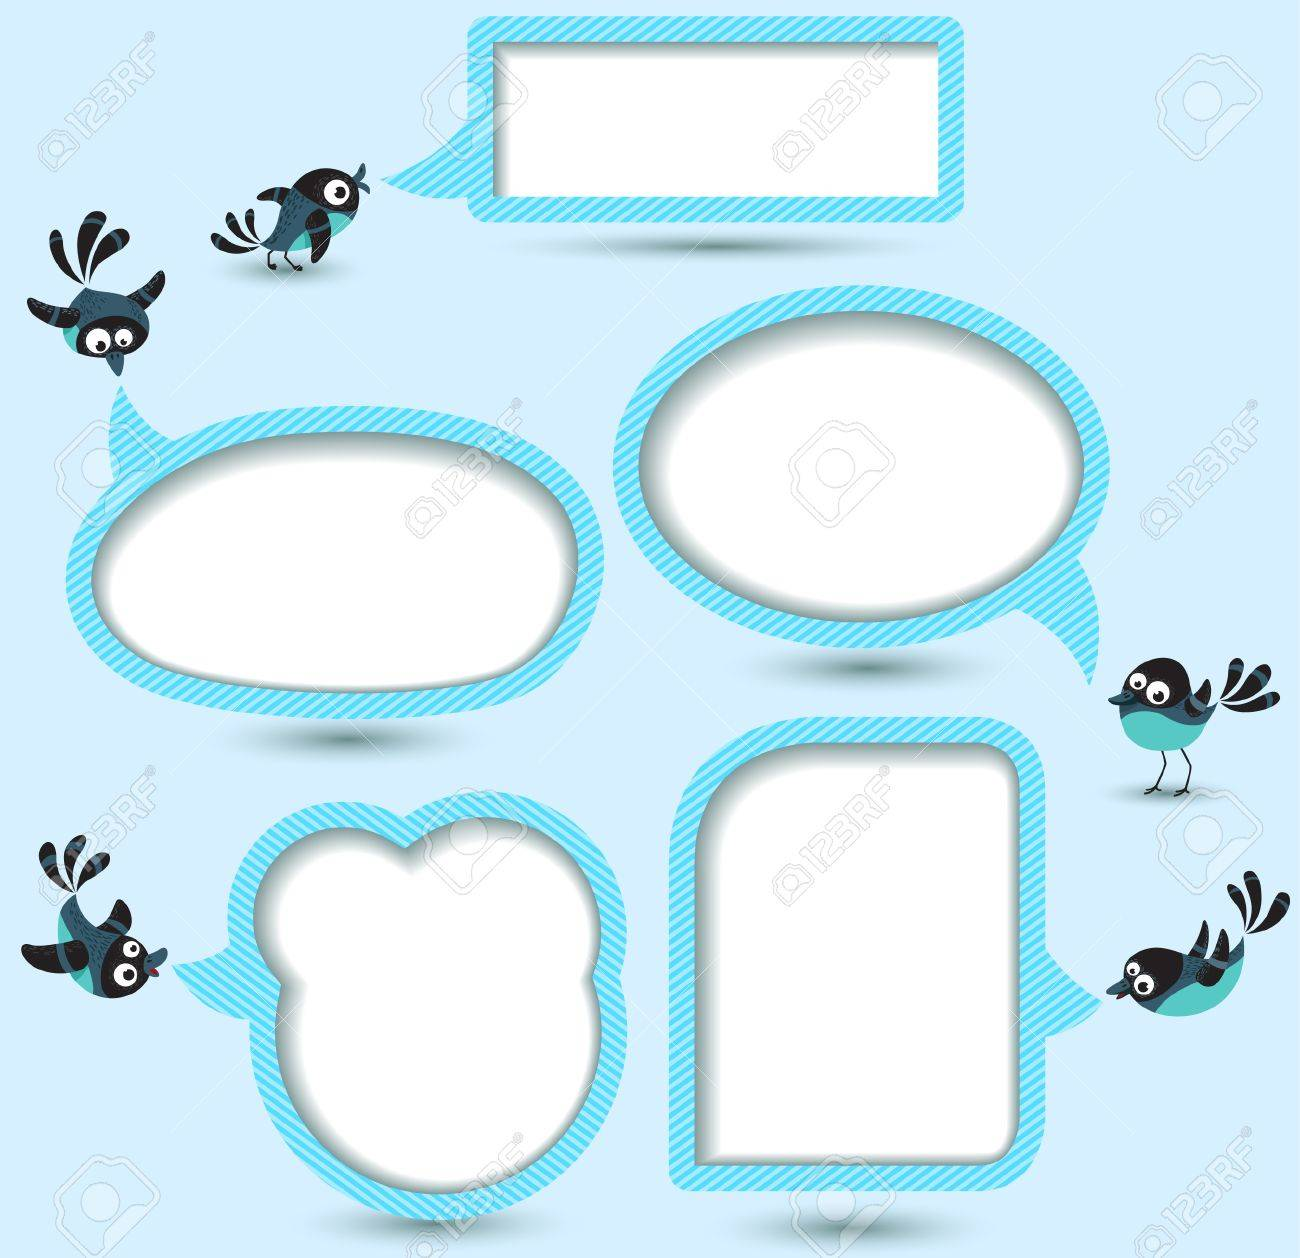 8 350 animal clouds shape stock vector illustration and royalty